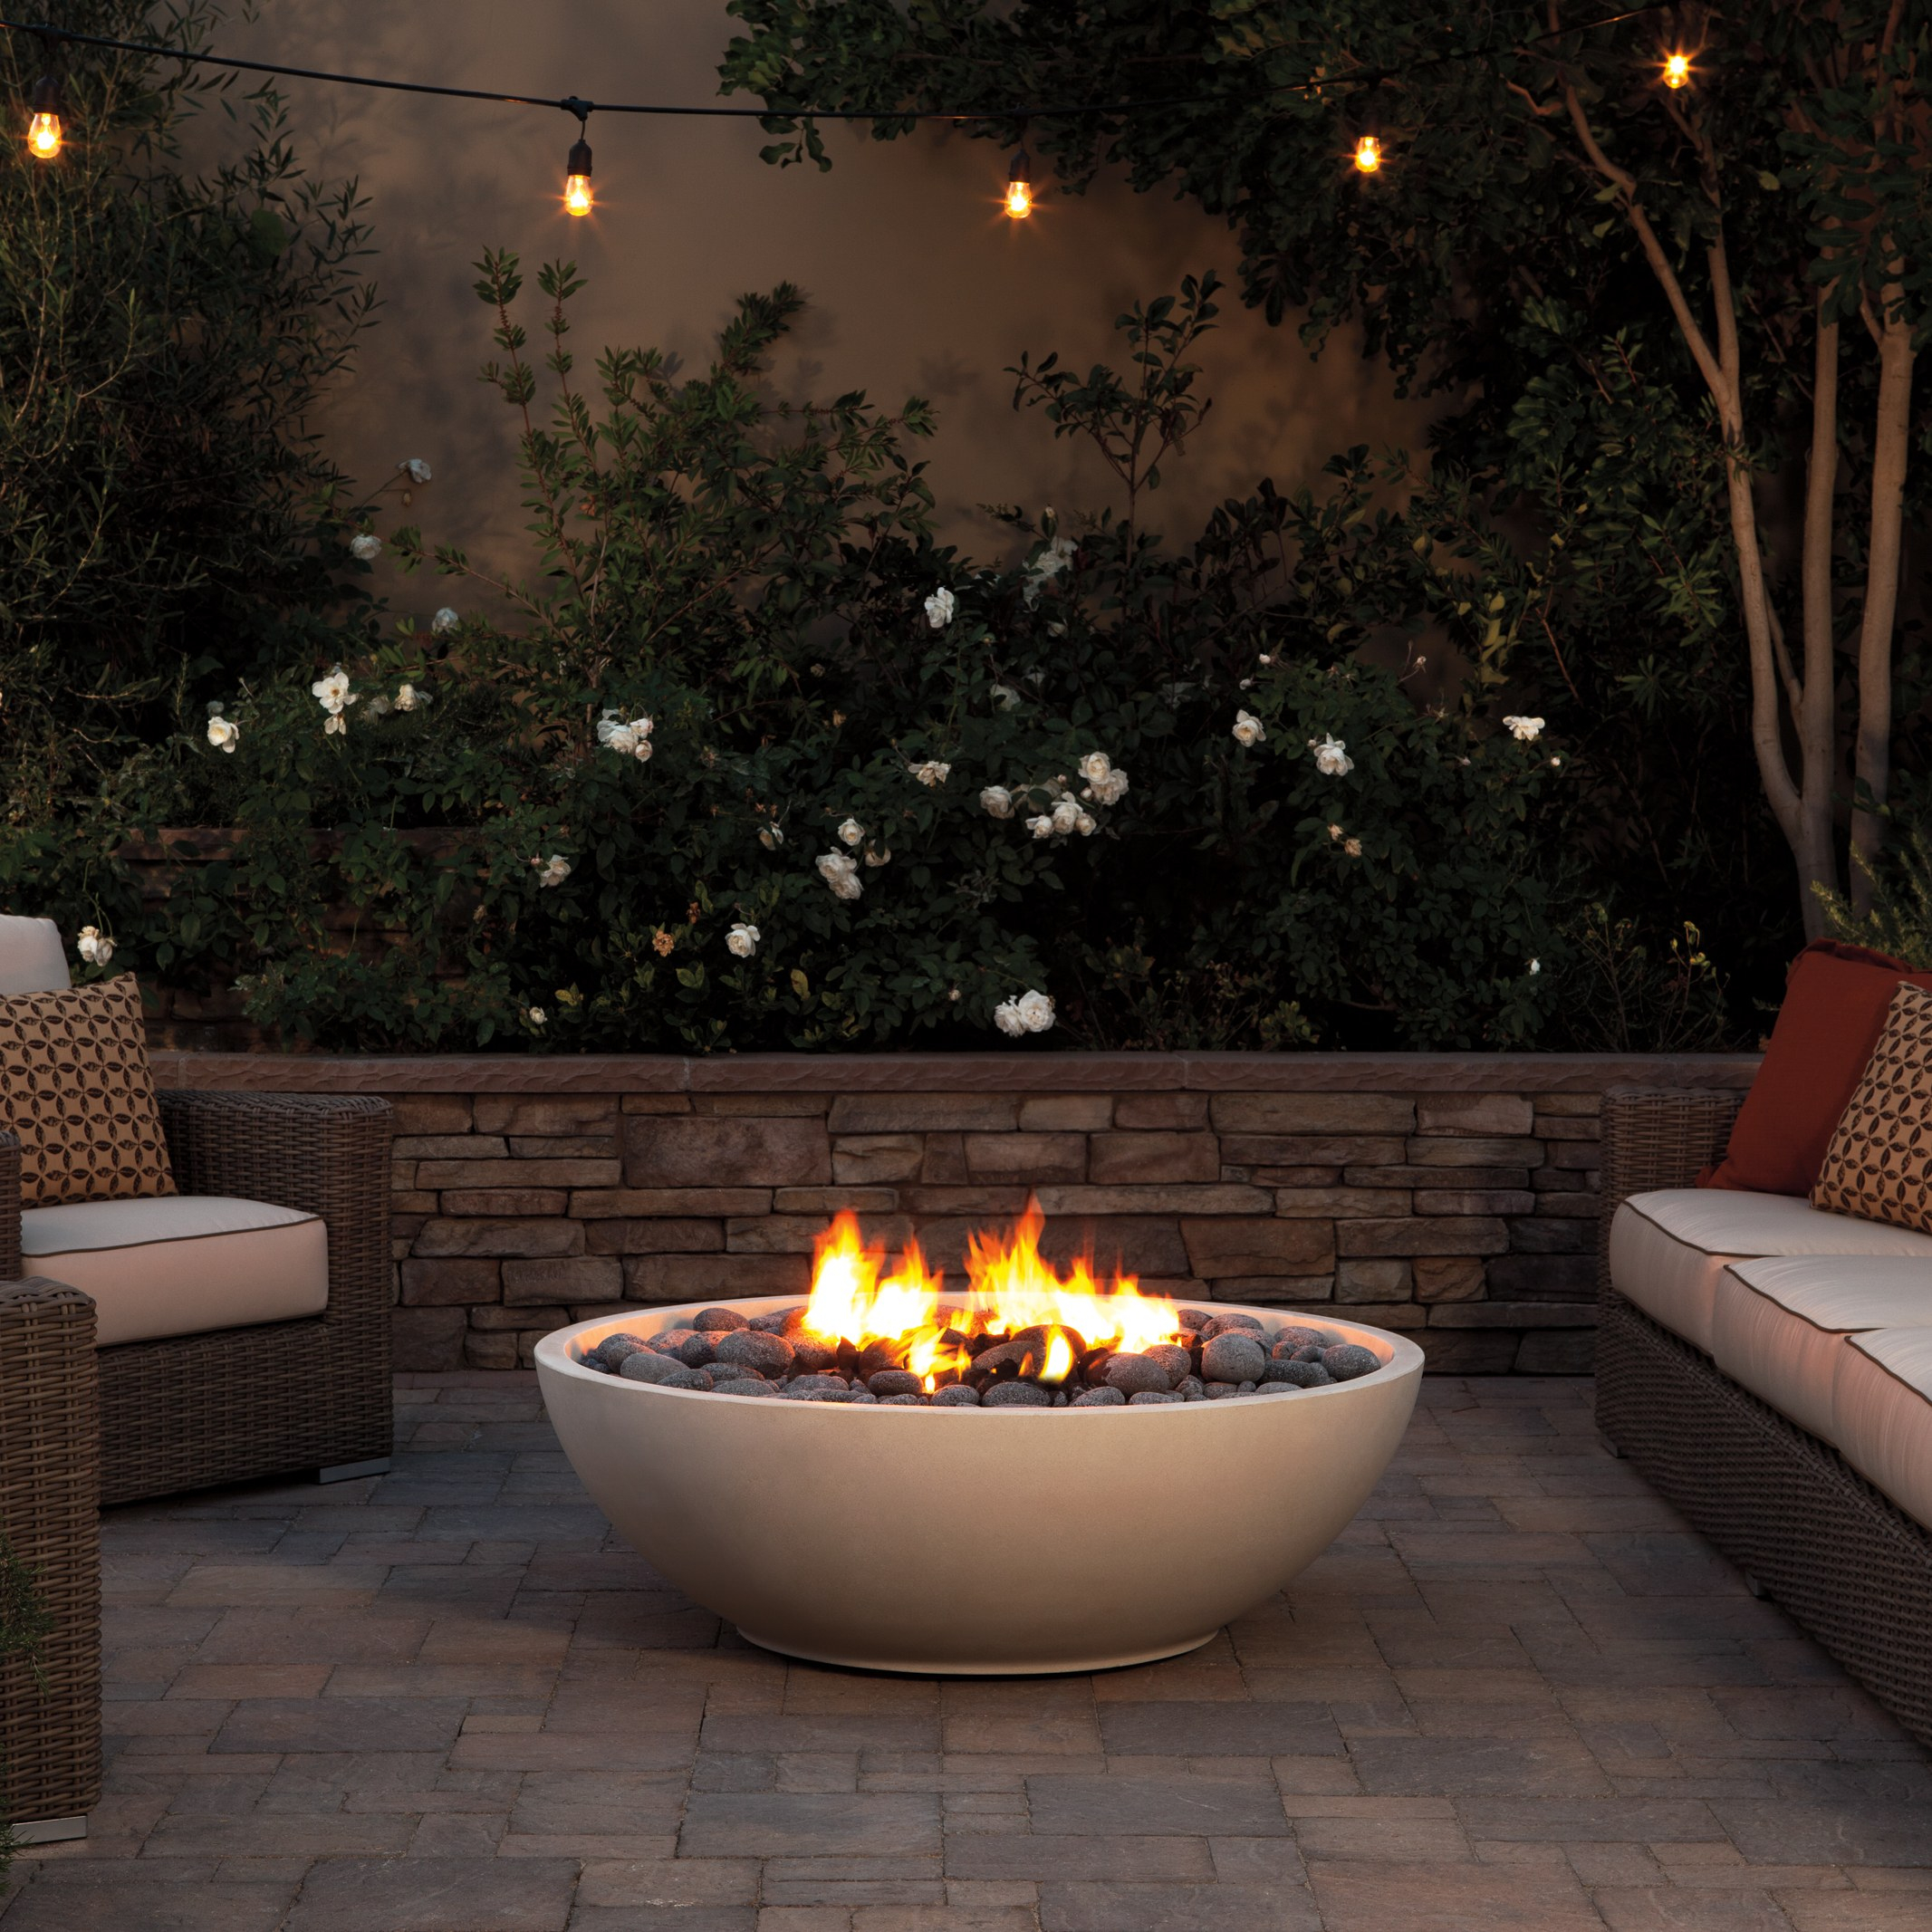 12 Patio Heaters To Make The Most Of A Terrace In Winter within sizing 2133 X 2133